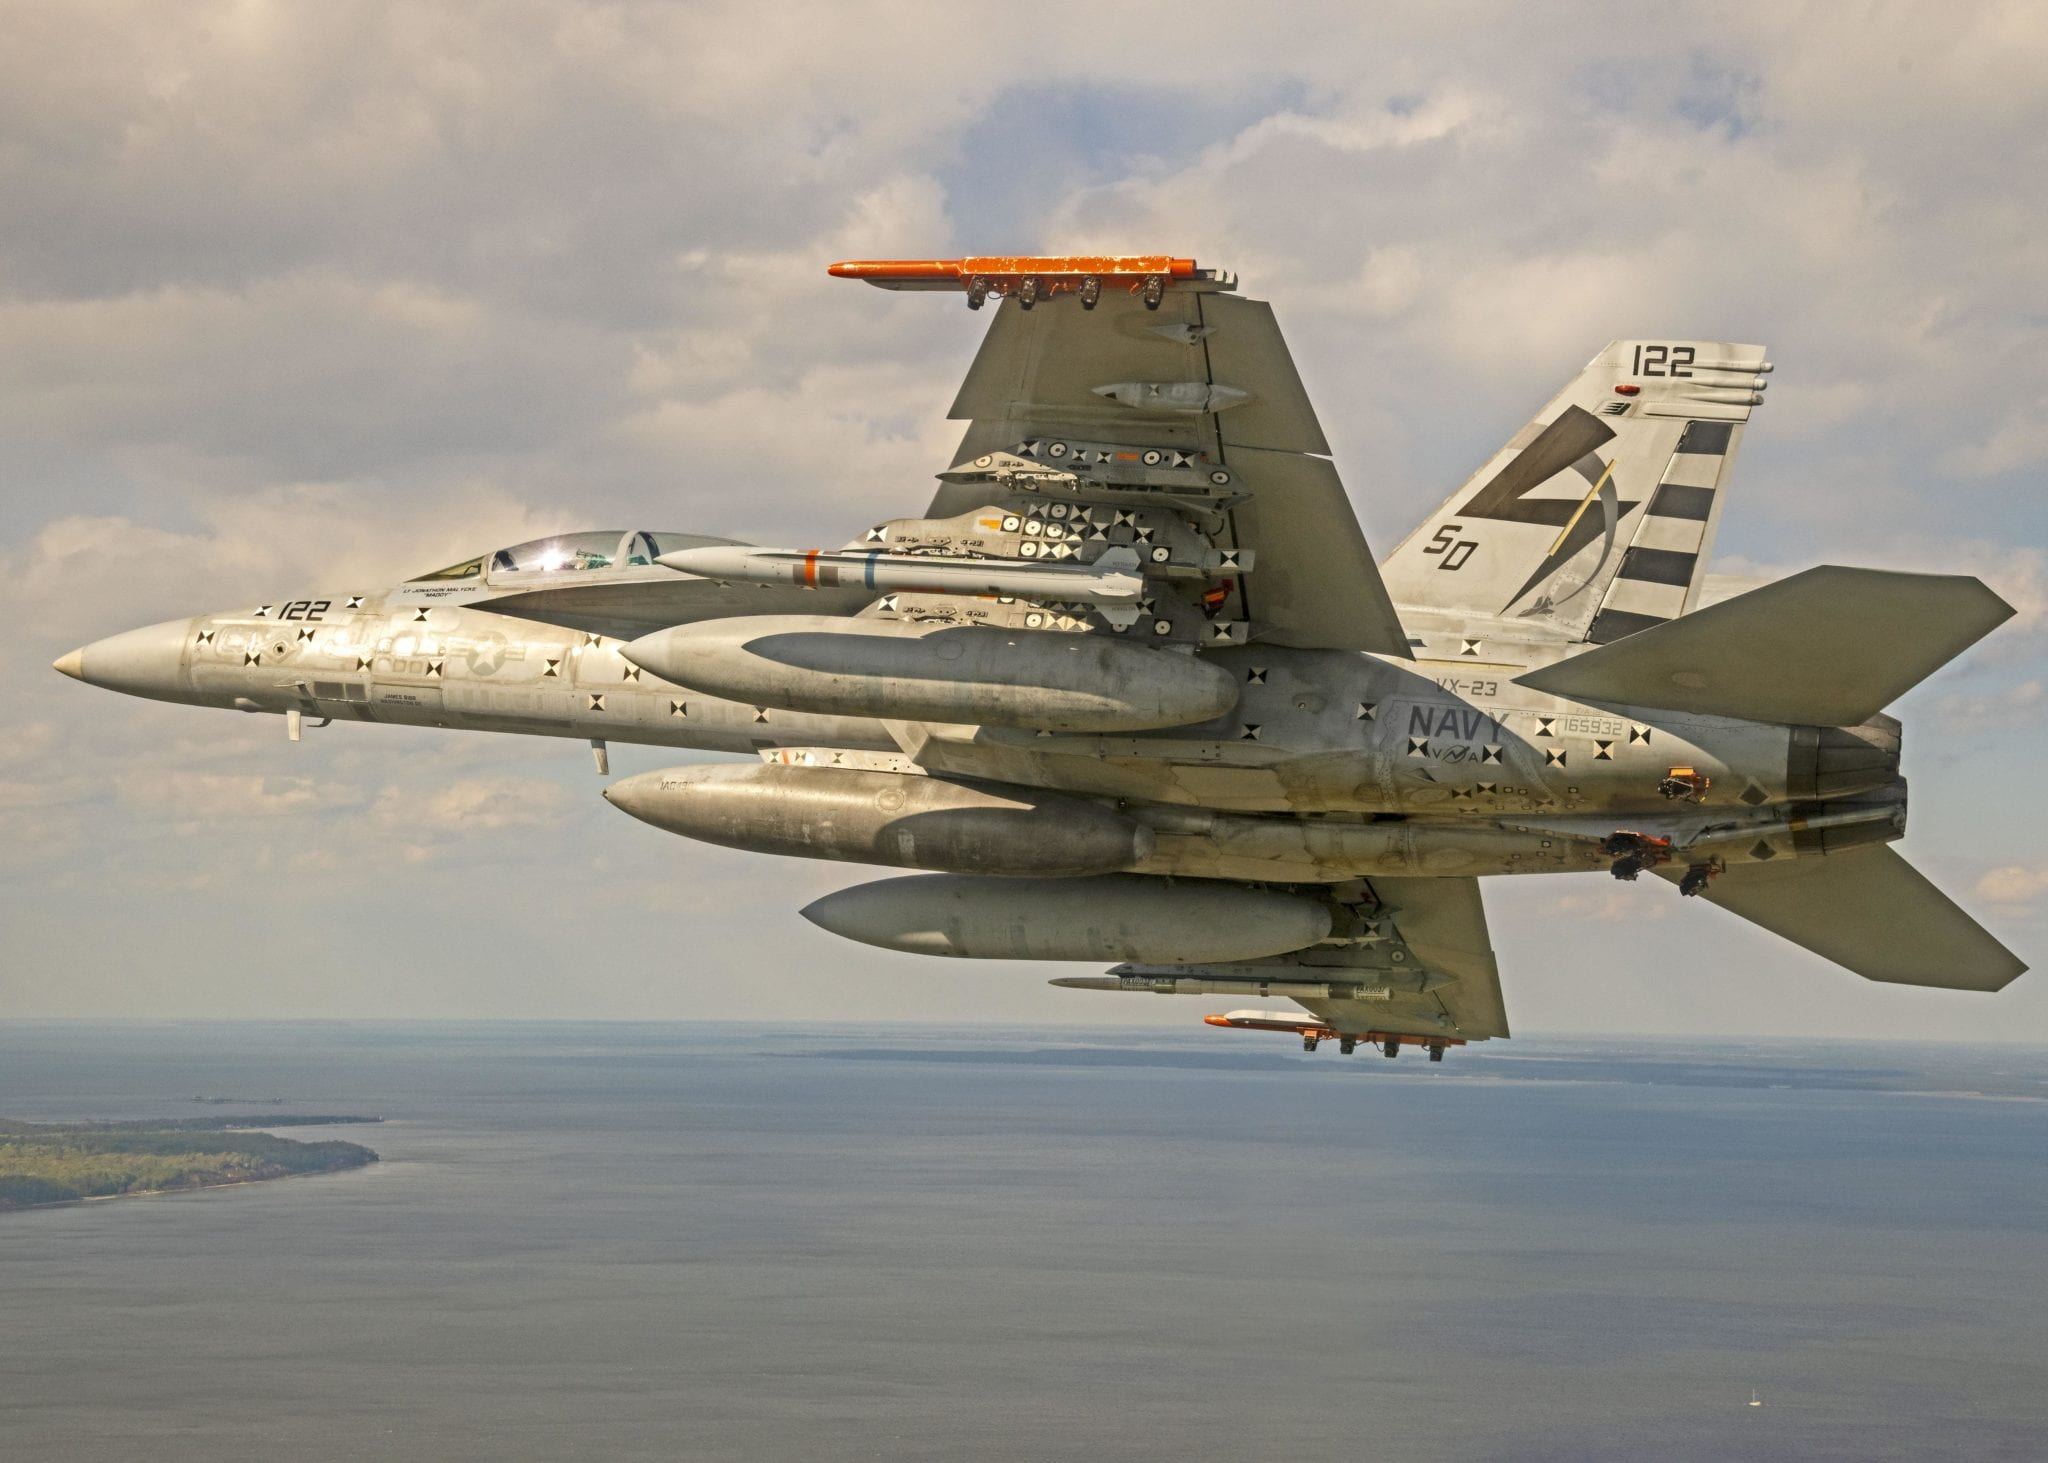 Navy Completes F/A-18, AARGM-ER Flight with Separation Test Vehicle - Seapower